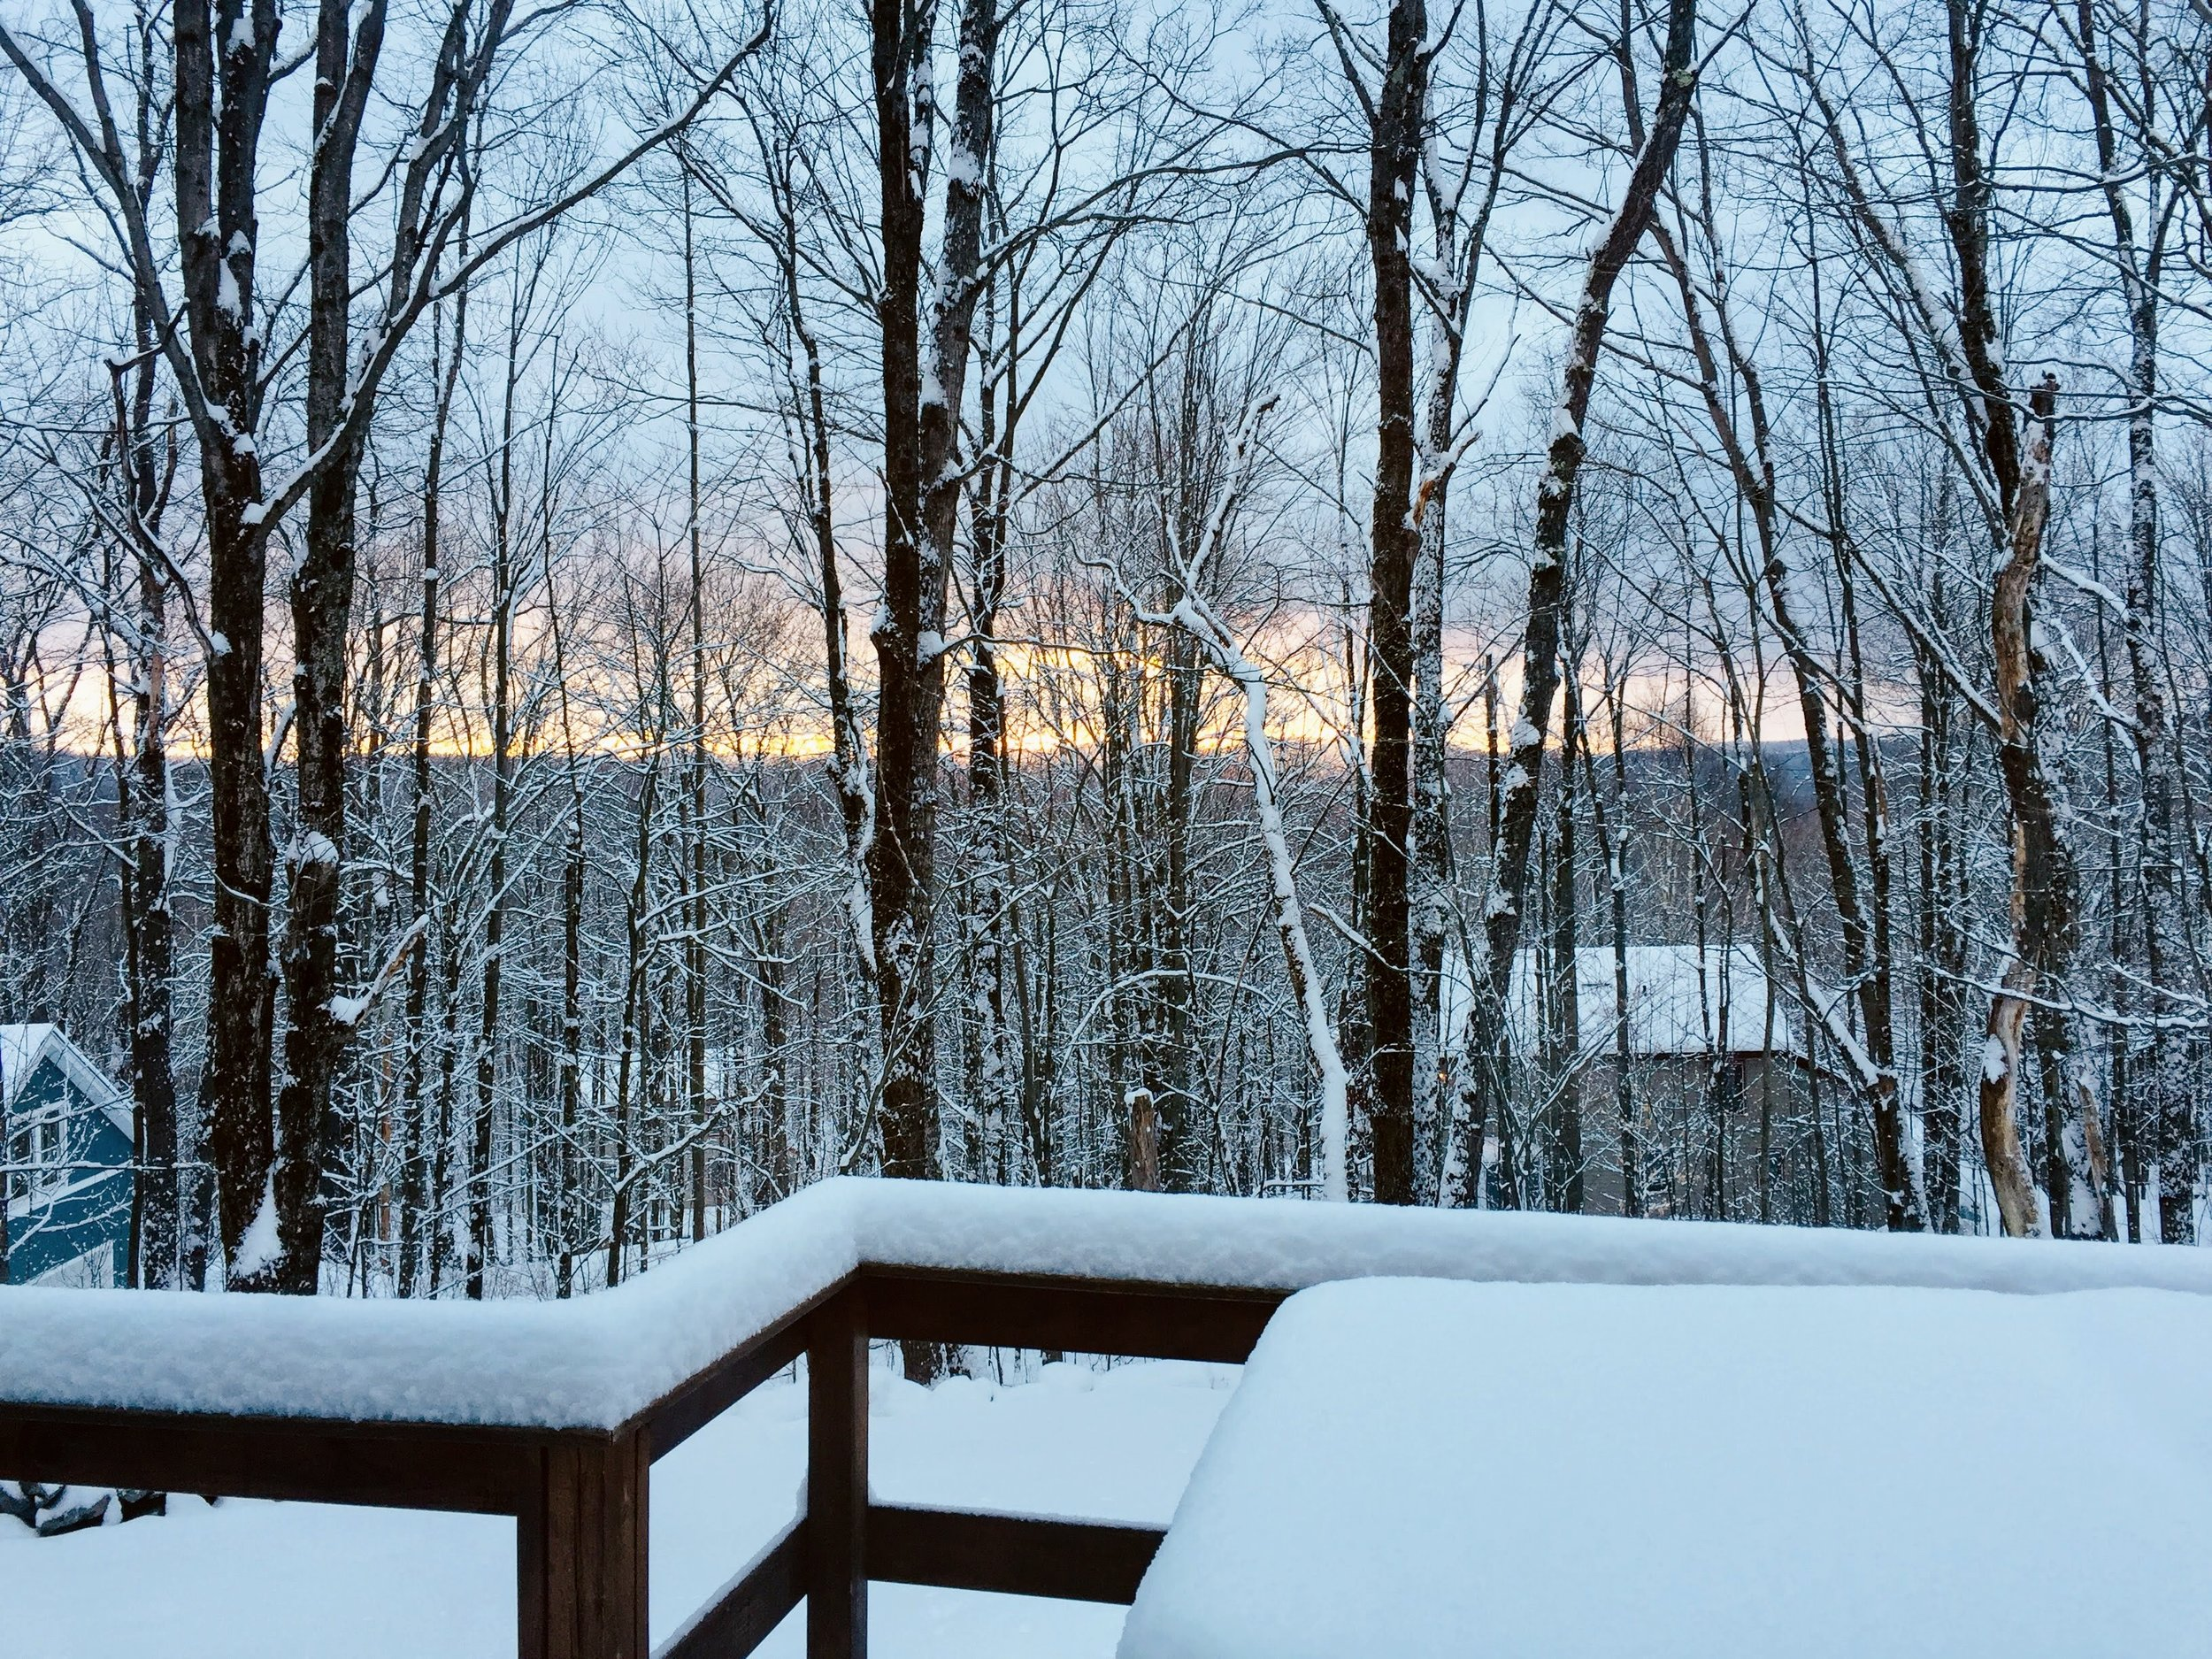 Looking out the back deck in the winter